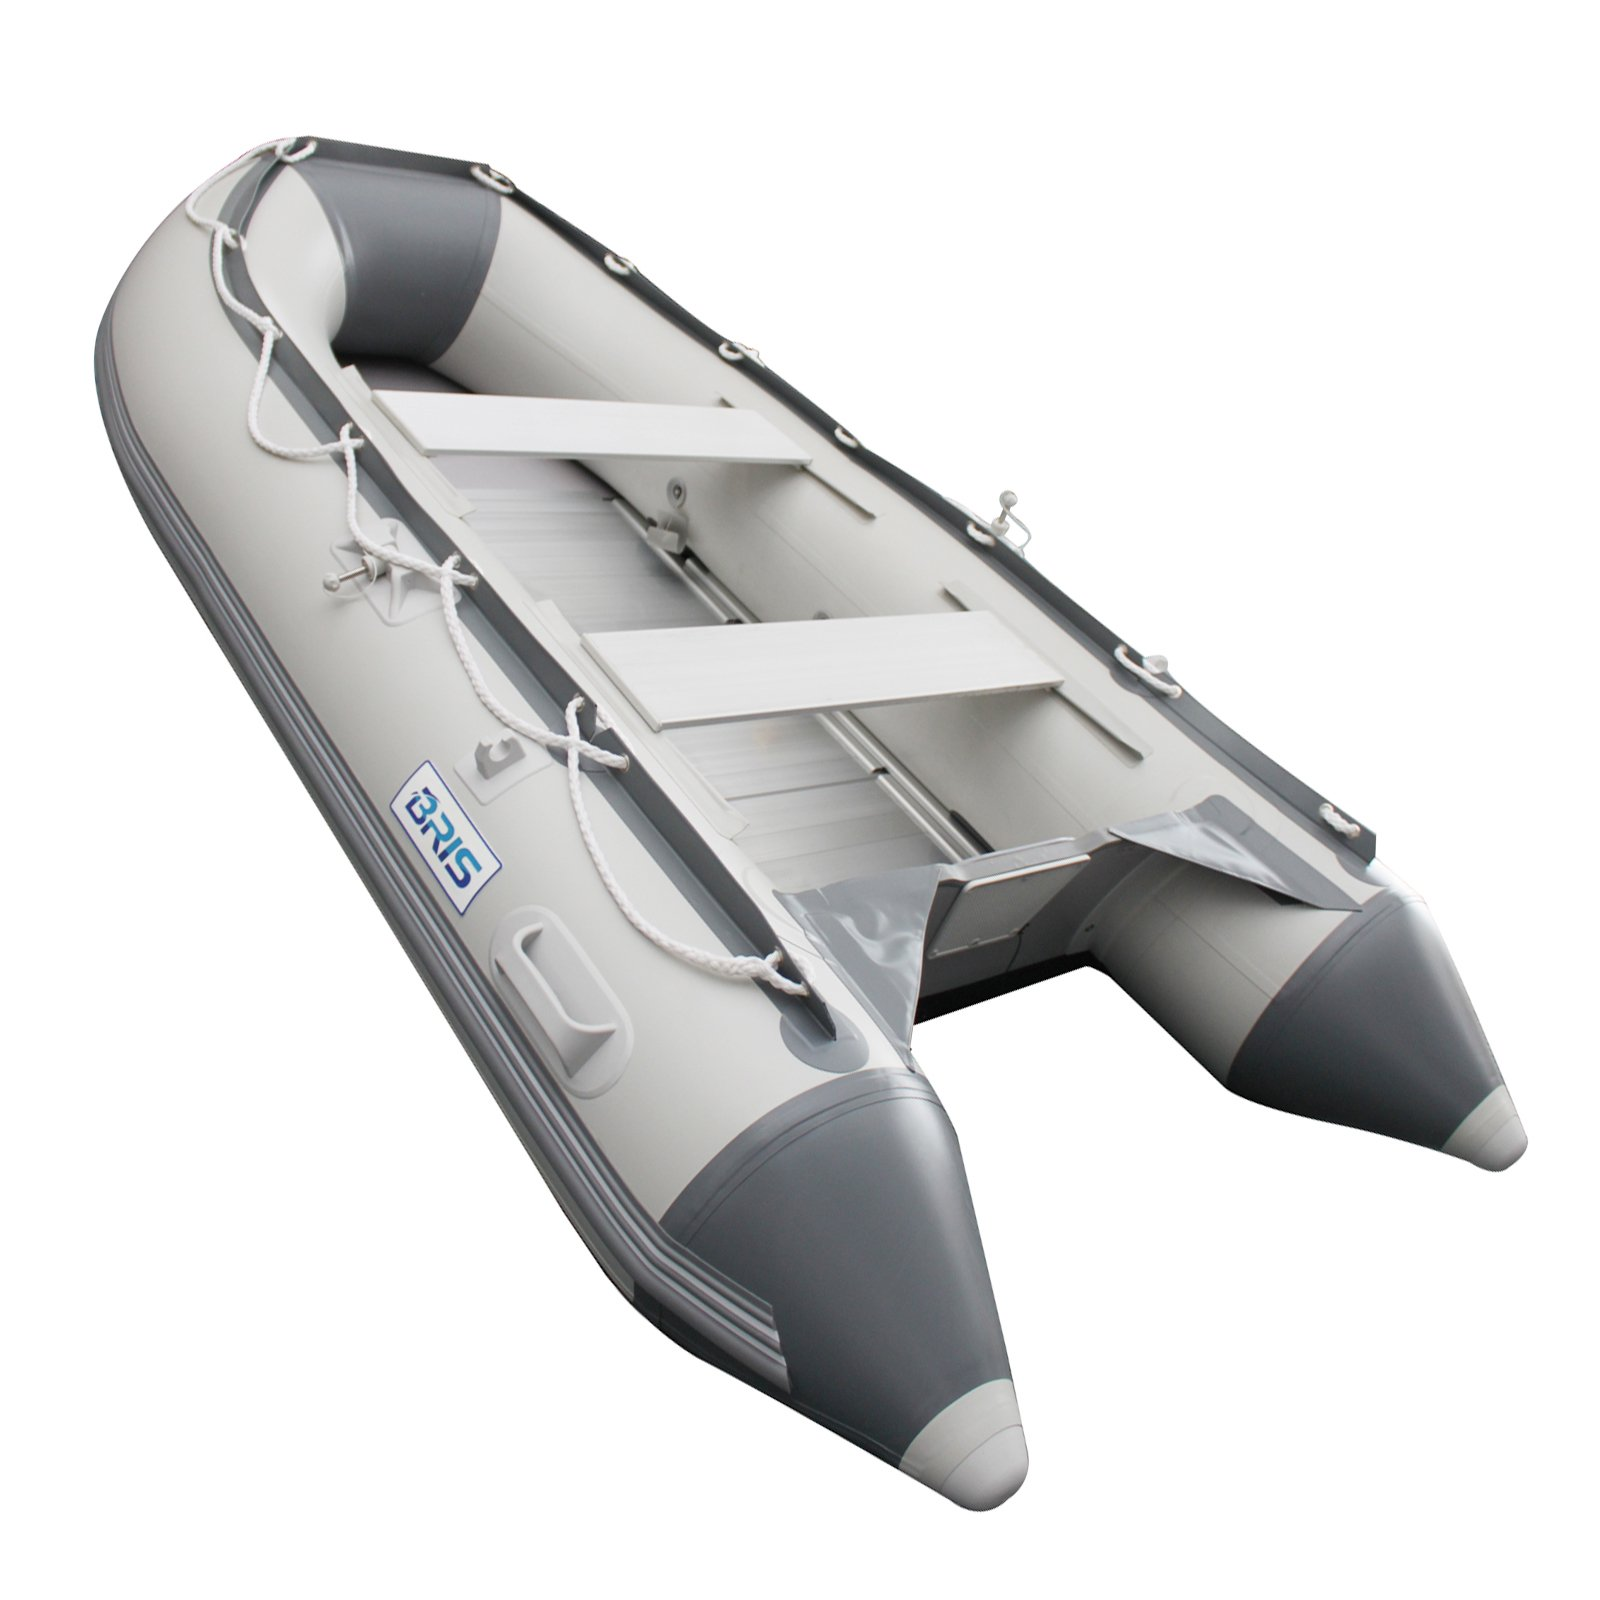 BRIS 9.8 ft Inflatable Boat Inflatable Dinghy Boat Yacht Tender Fishing Raft